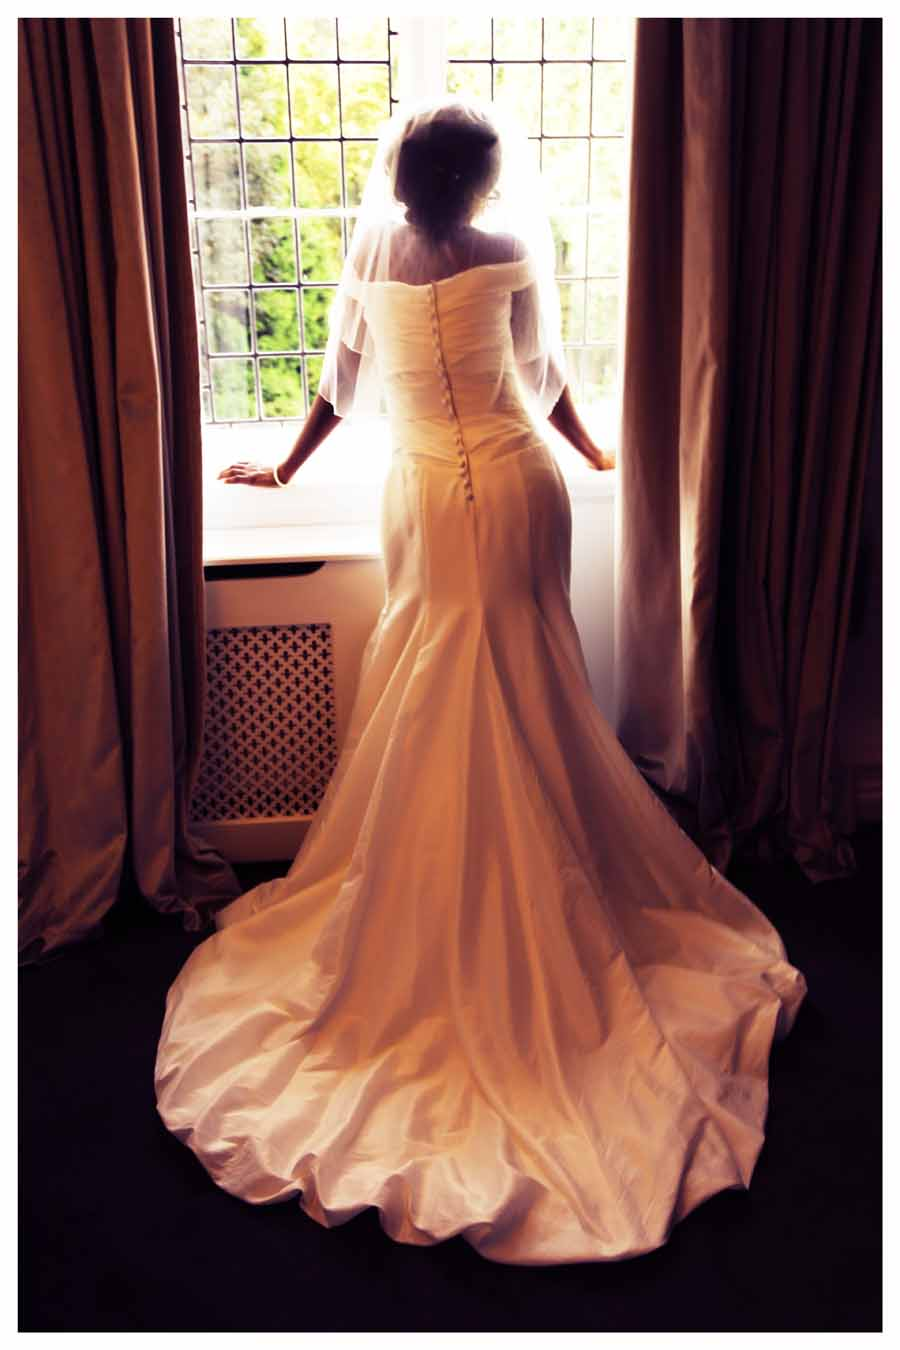 BRIDE Photos by Simeon Thaw copyright 2014 (10).jpg